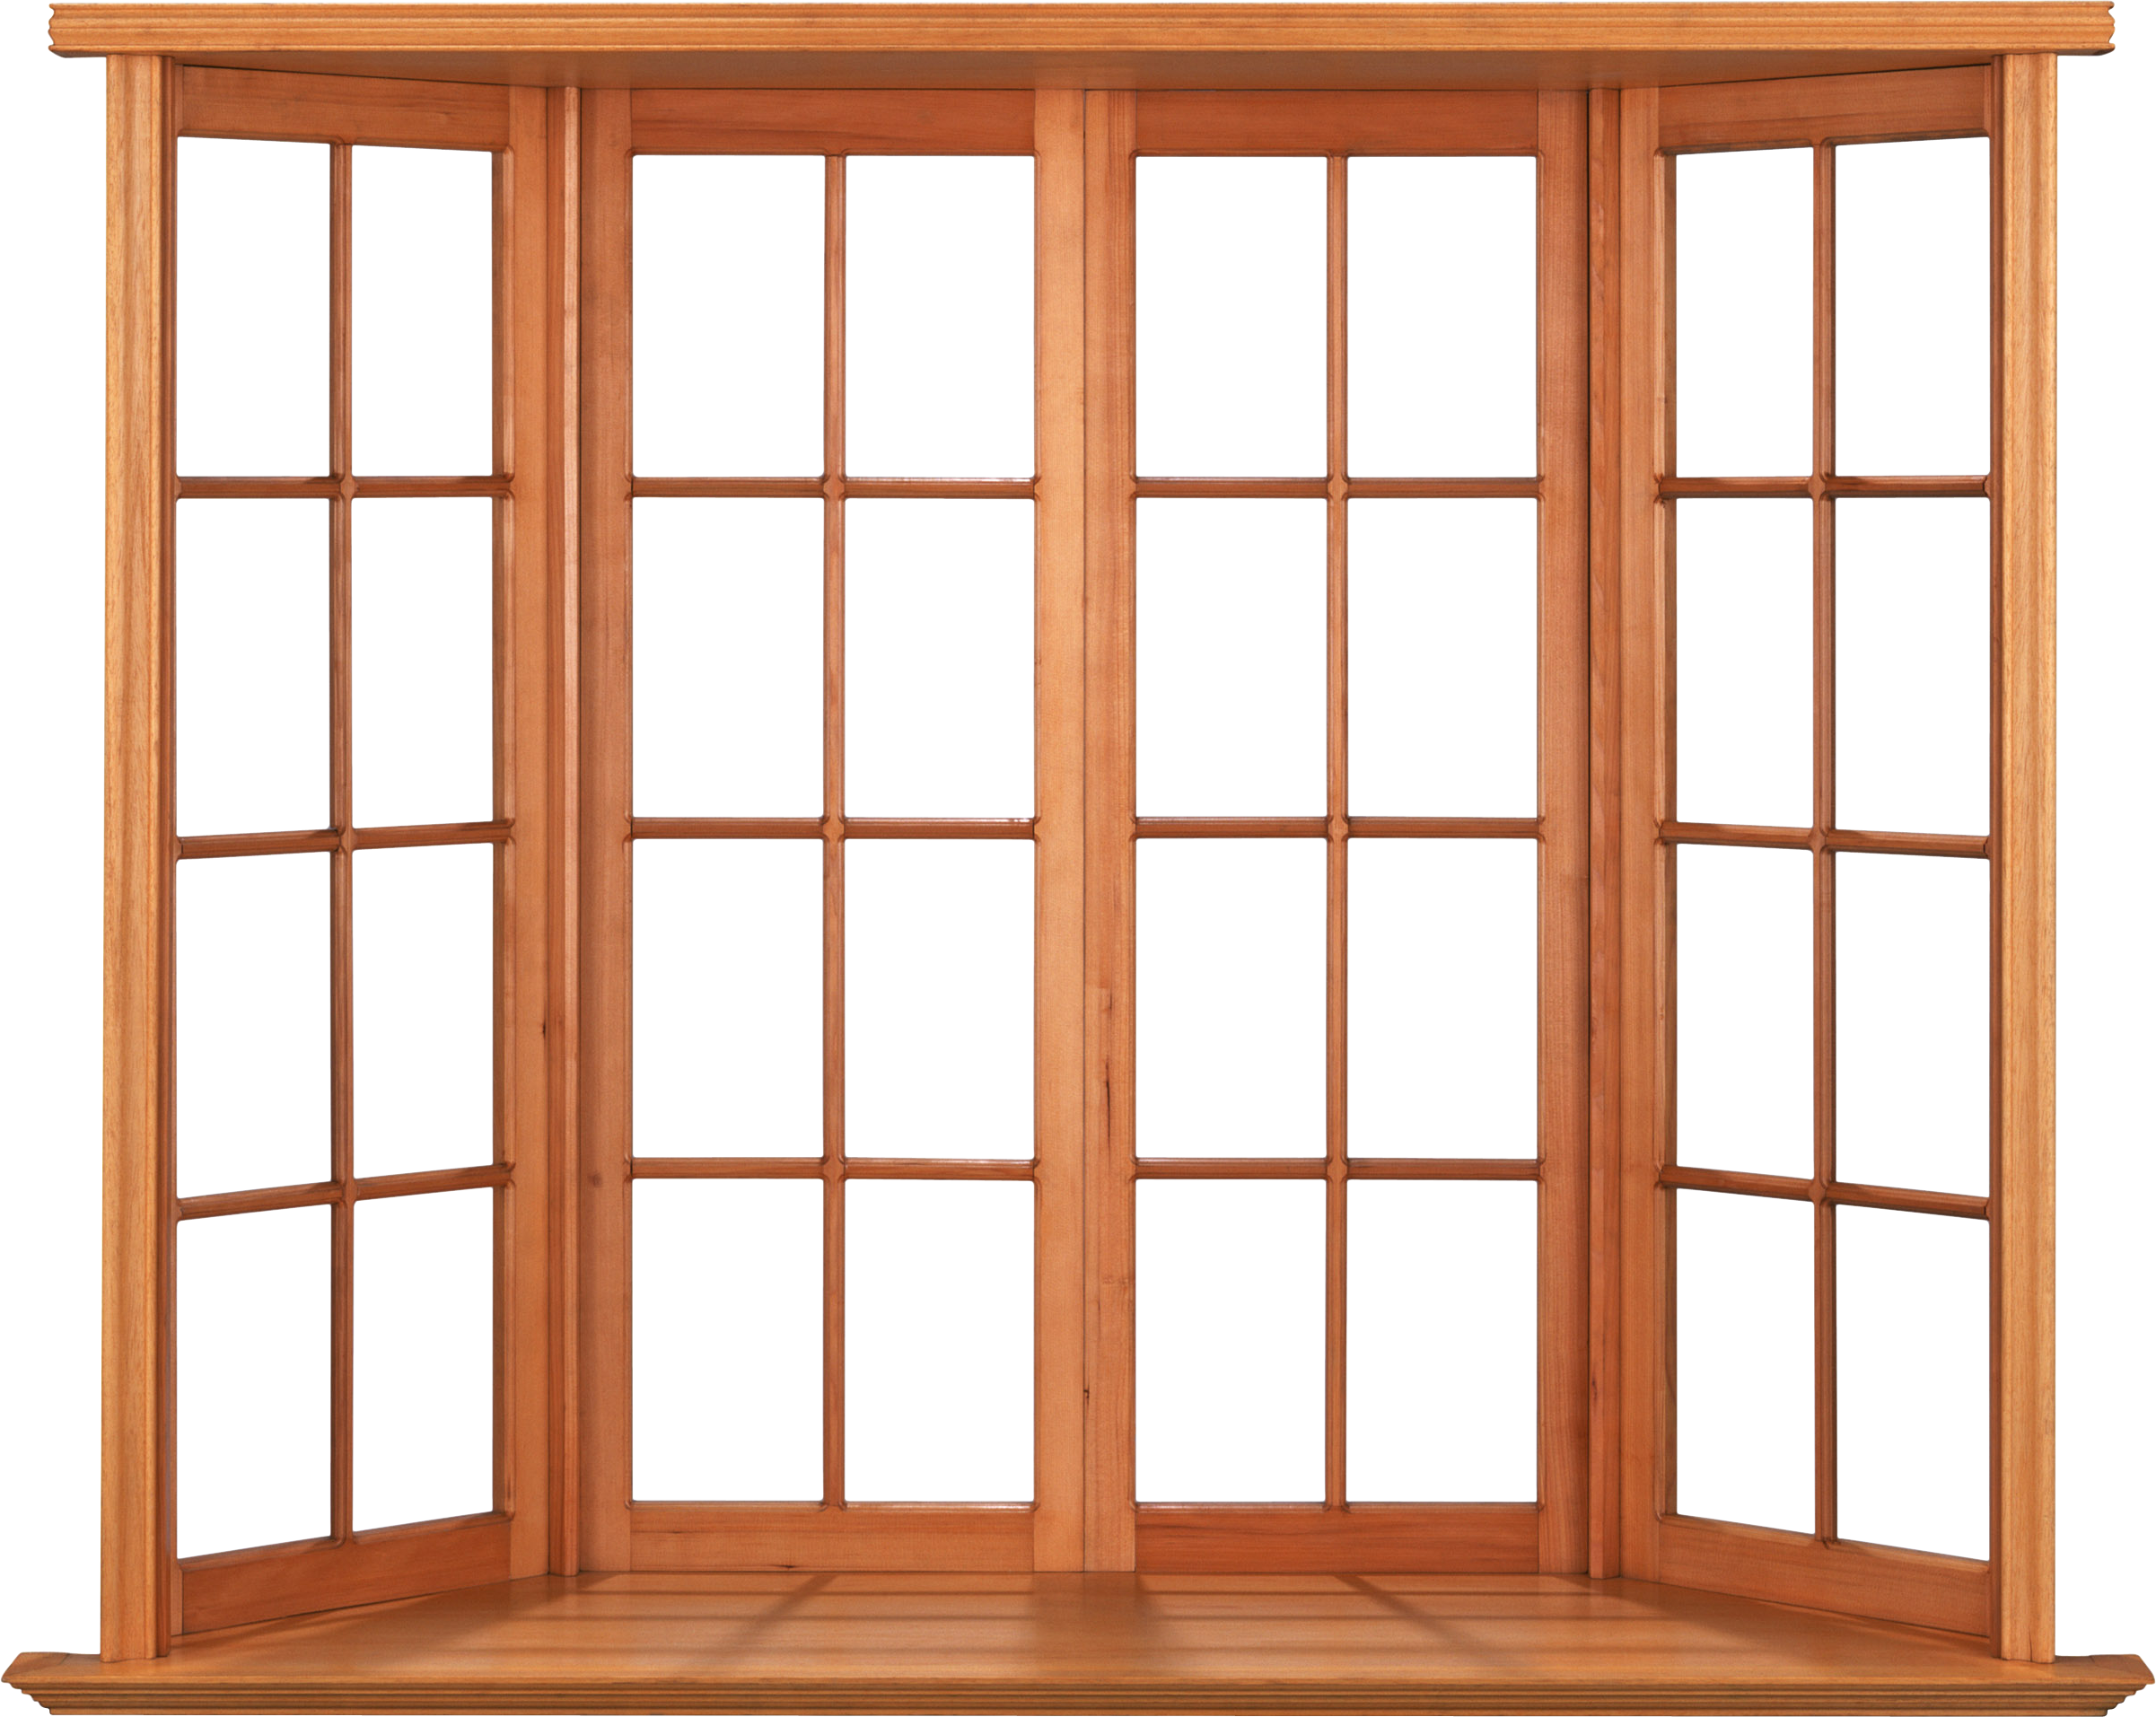 Windows transparent clipart. Window png images free